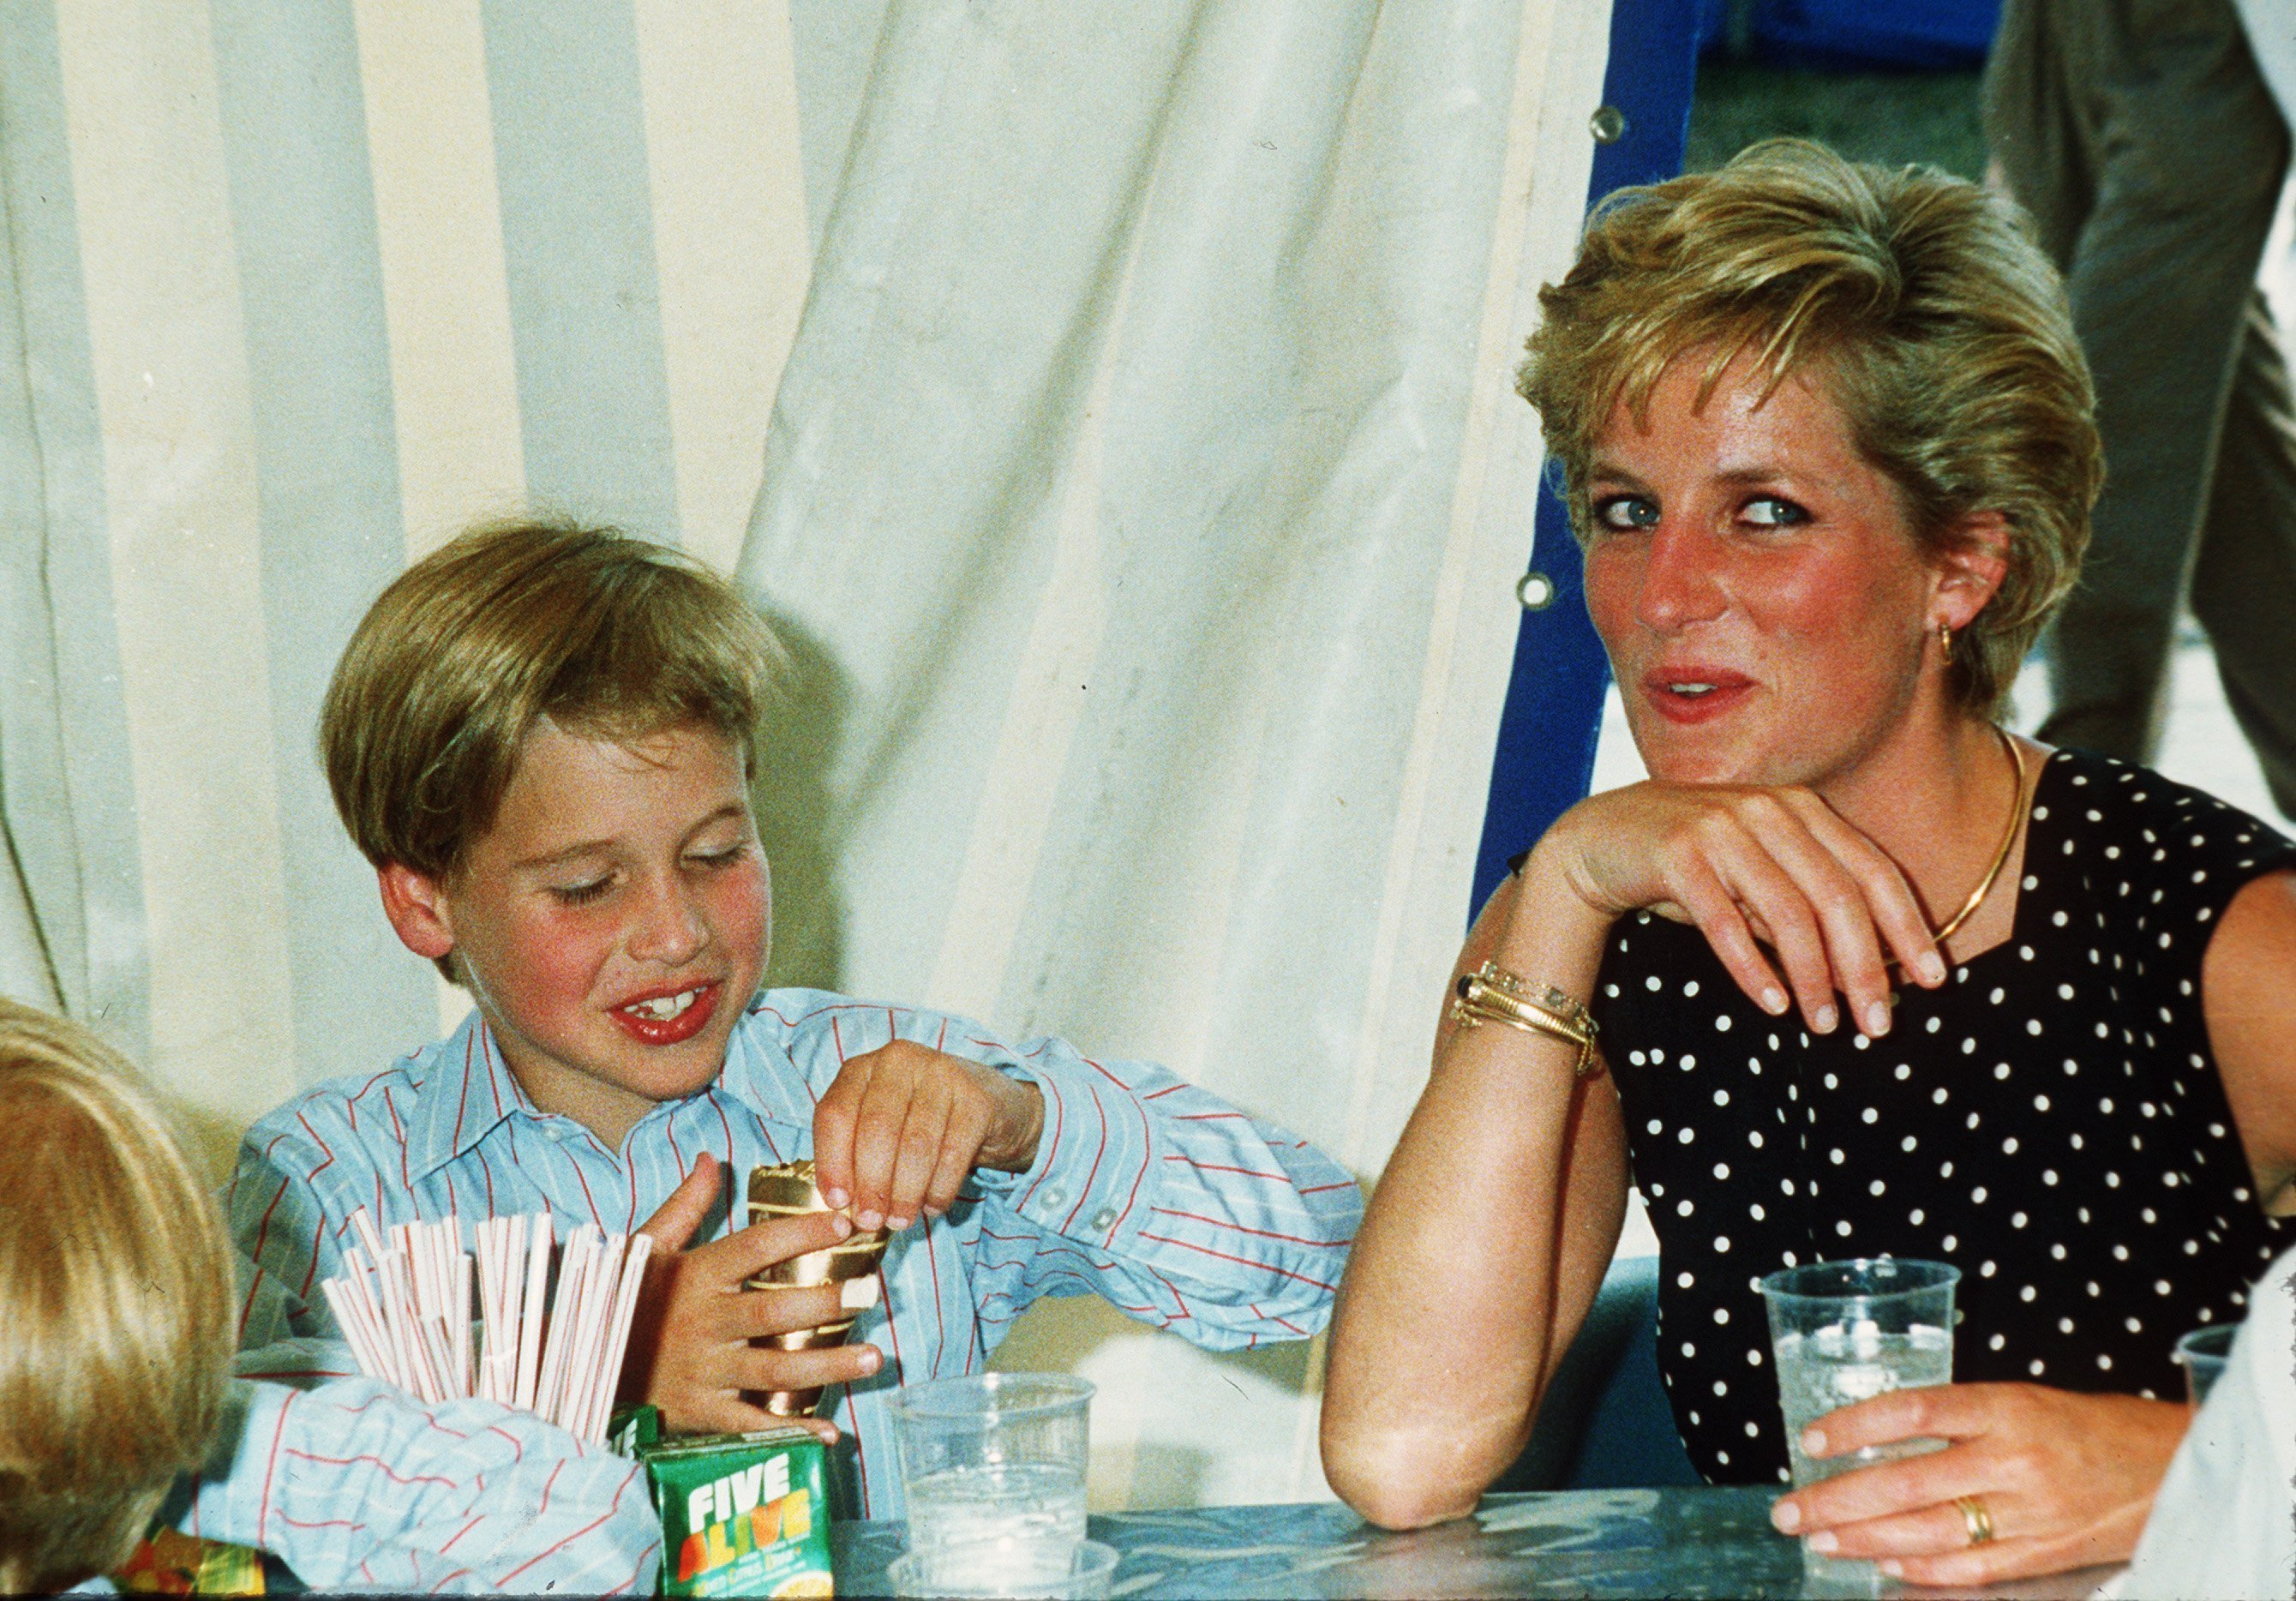 Princess Diana and Princess William at Windsor Great Park | Photo: Getty Images